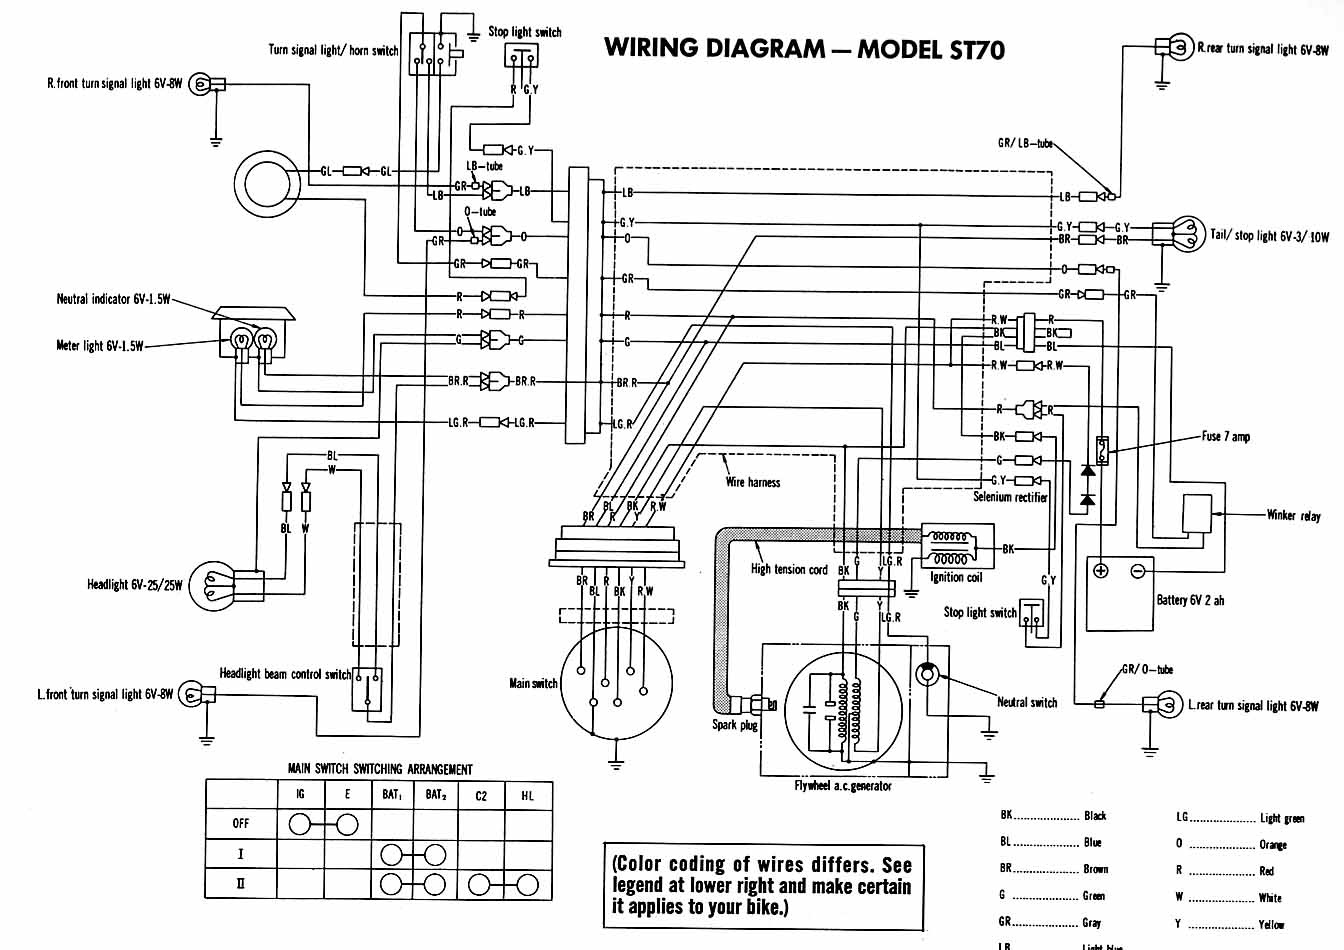 Index of [wiringdiagrams.cycleterminal.com]